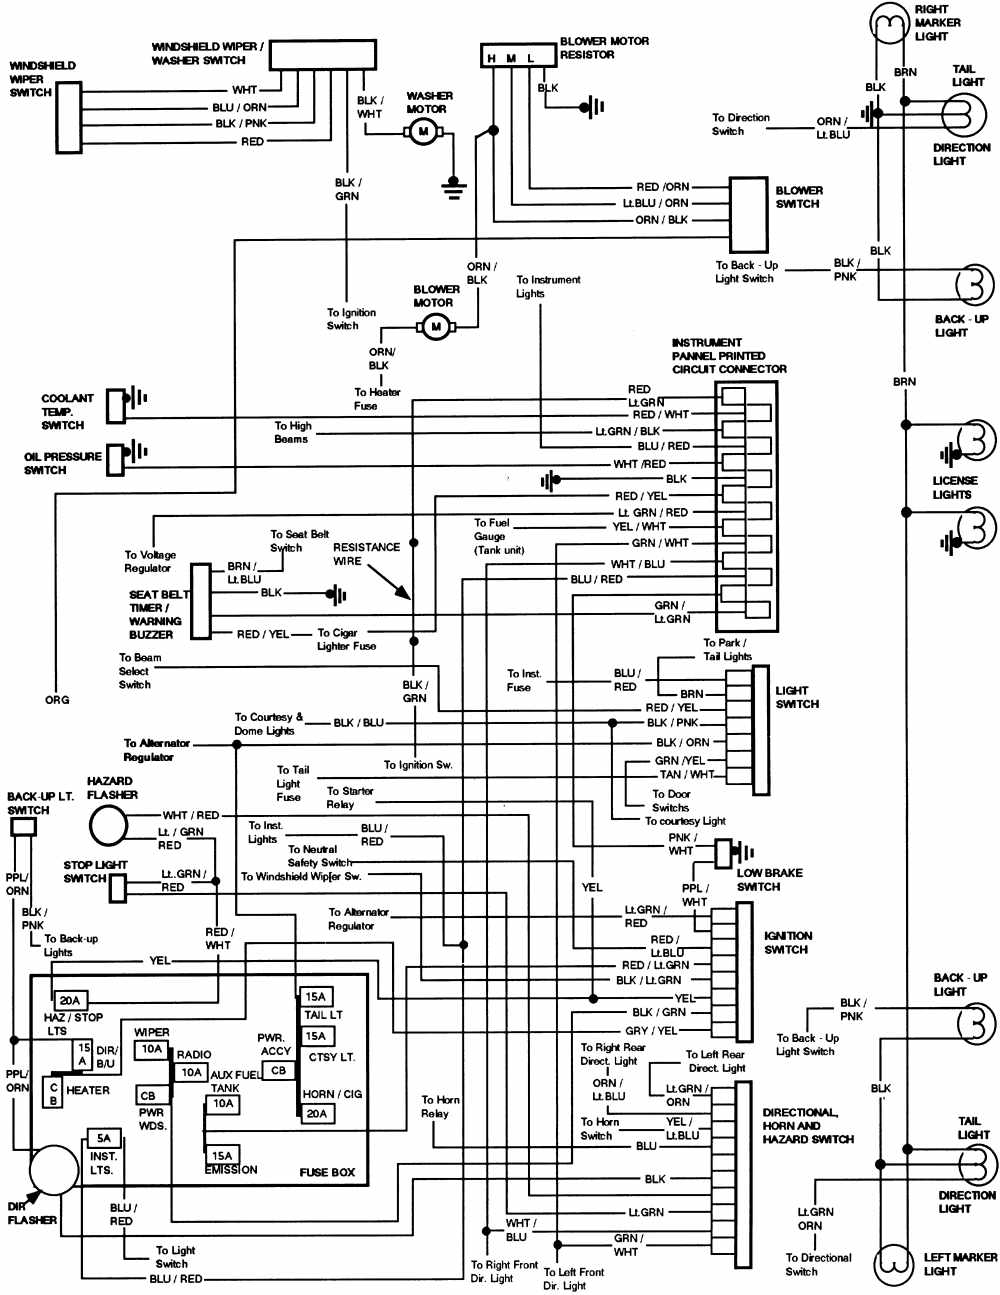 1995 blazer wiring diagram